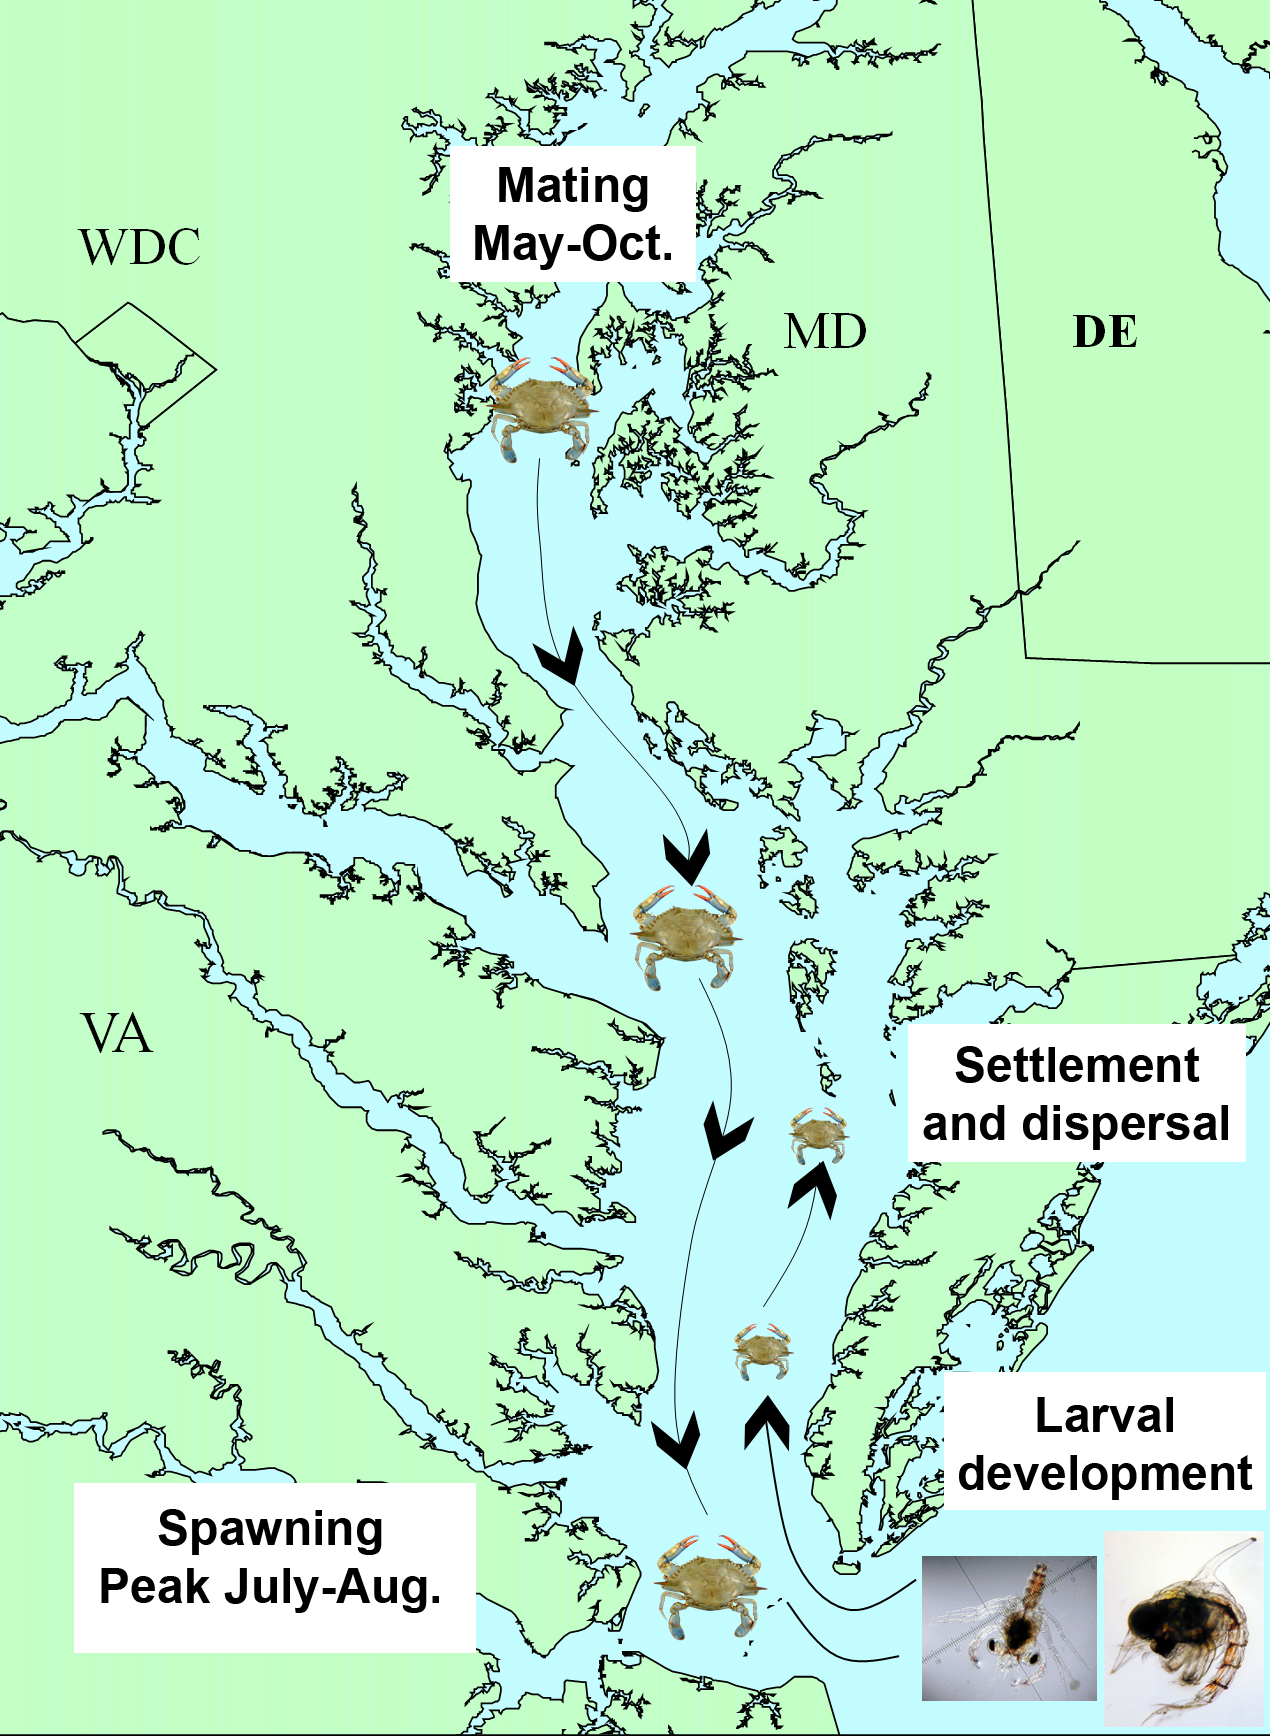 Migrations of adult female crabs (downward) and juvenile crabs (upward) in Chesapeake Bay. Biologists are still figuring out the exact timing and route.